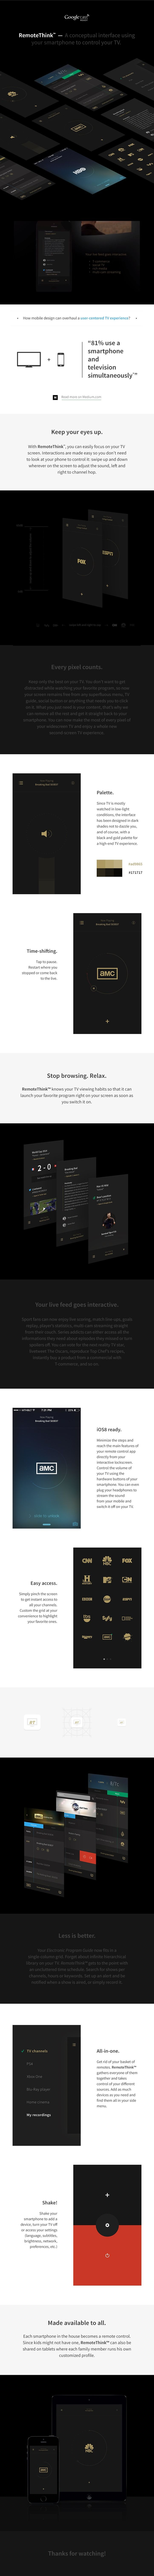 RemoteThink™ redefines the TV remote control as we know it with a conceptual mobile interface. Read more about the project on Medium: http://bit.ly/1qLzRE1